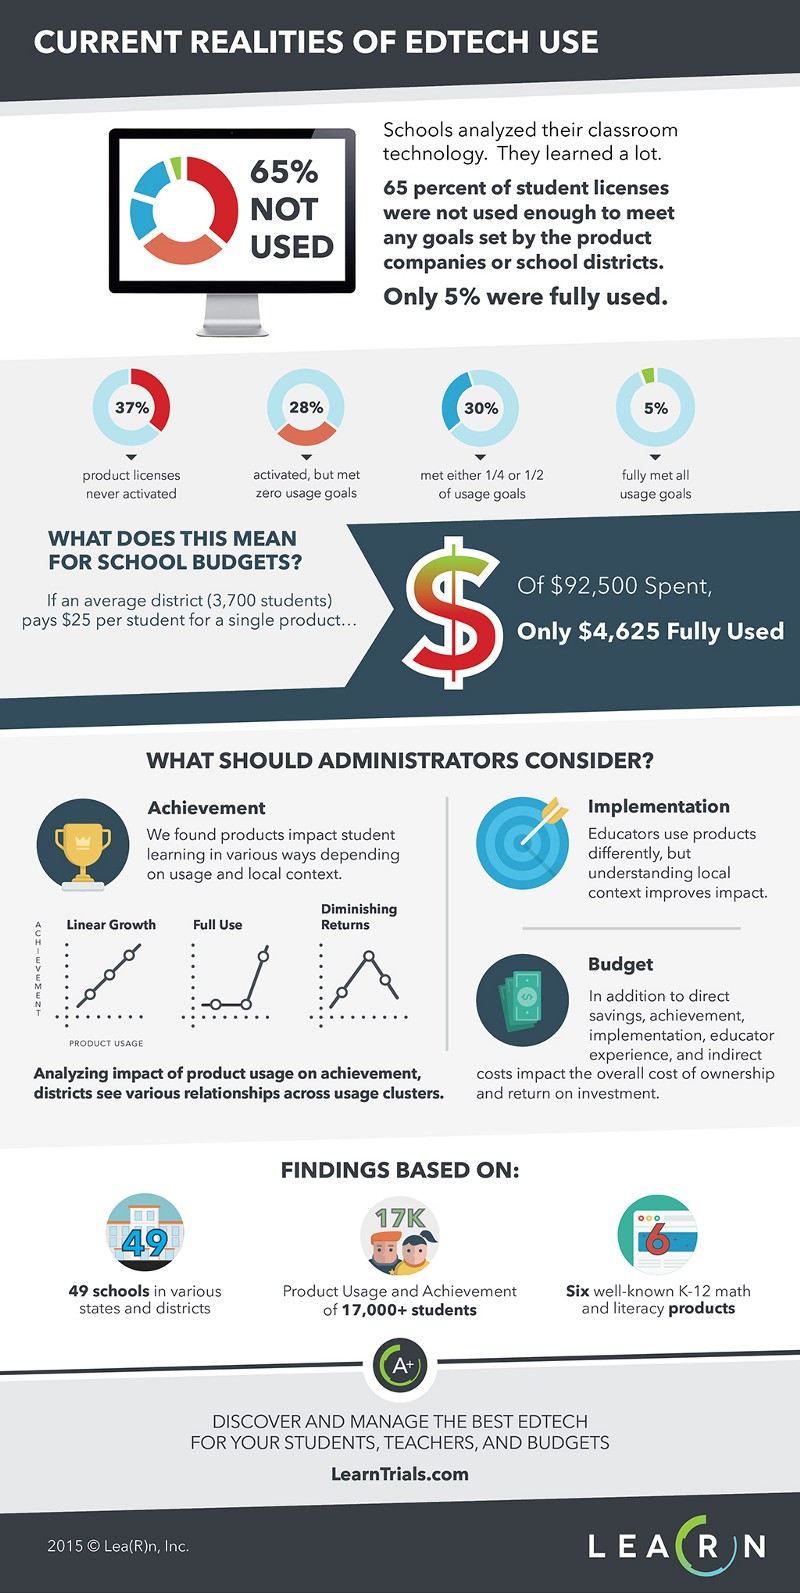 LearnPlatform - 2015 EdTech Usage Trends: Infographic and Research Brief